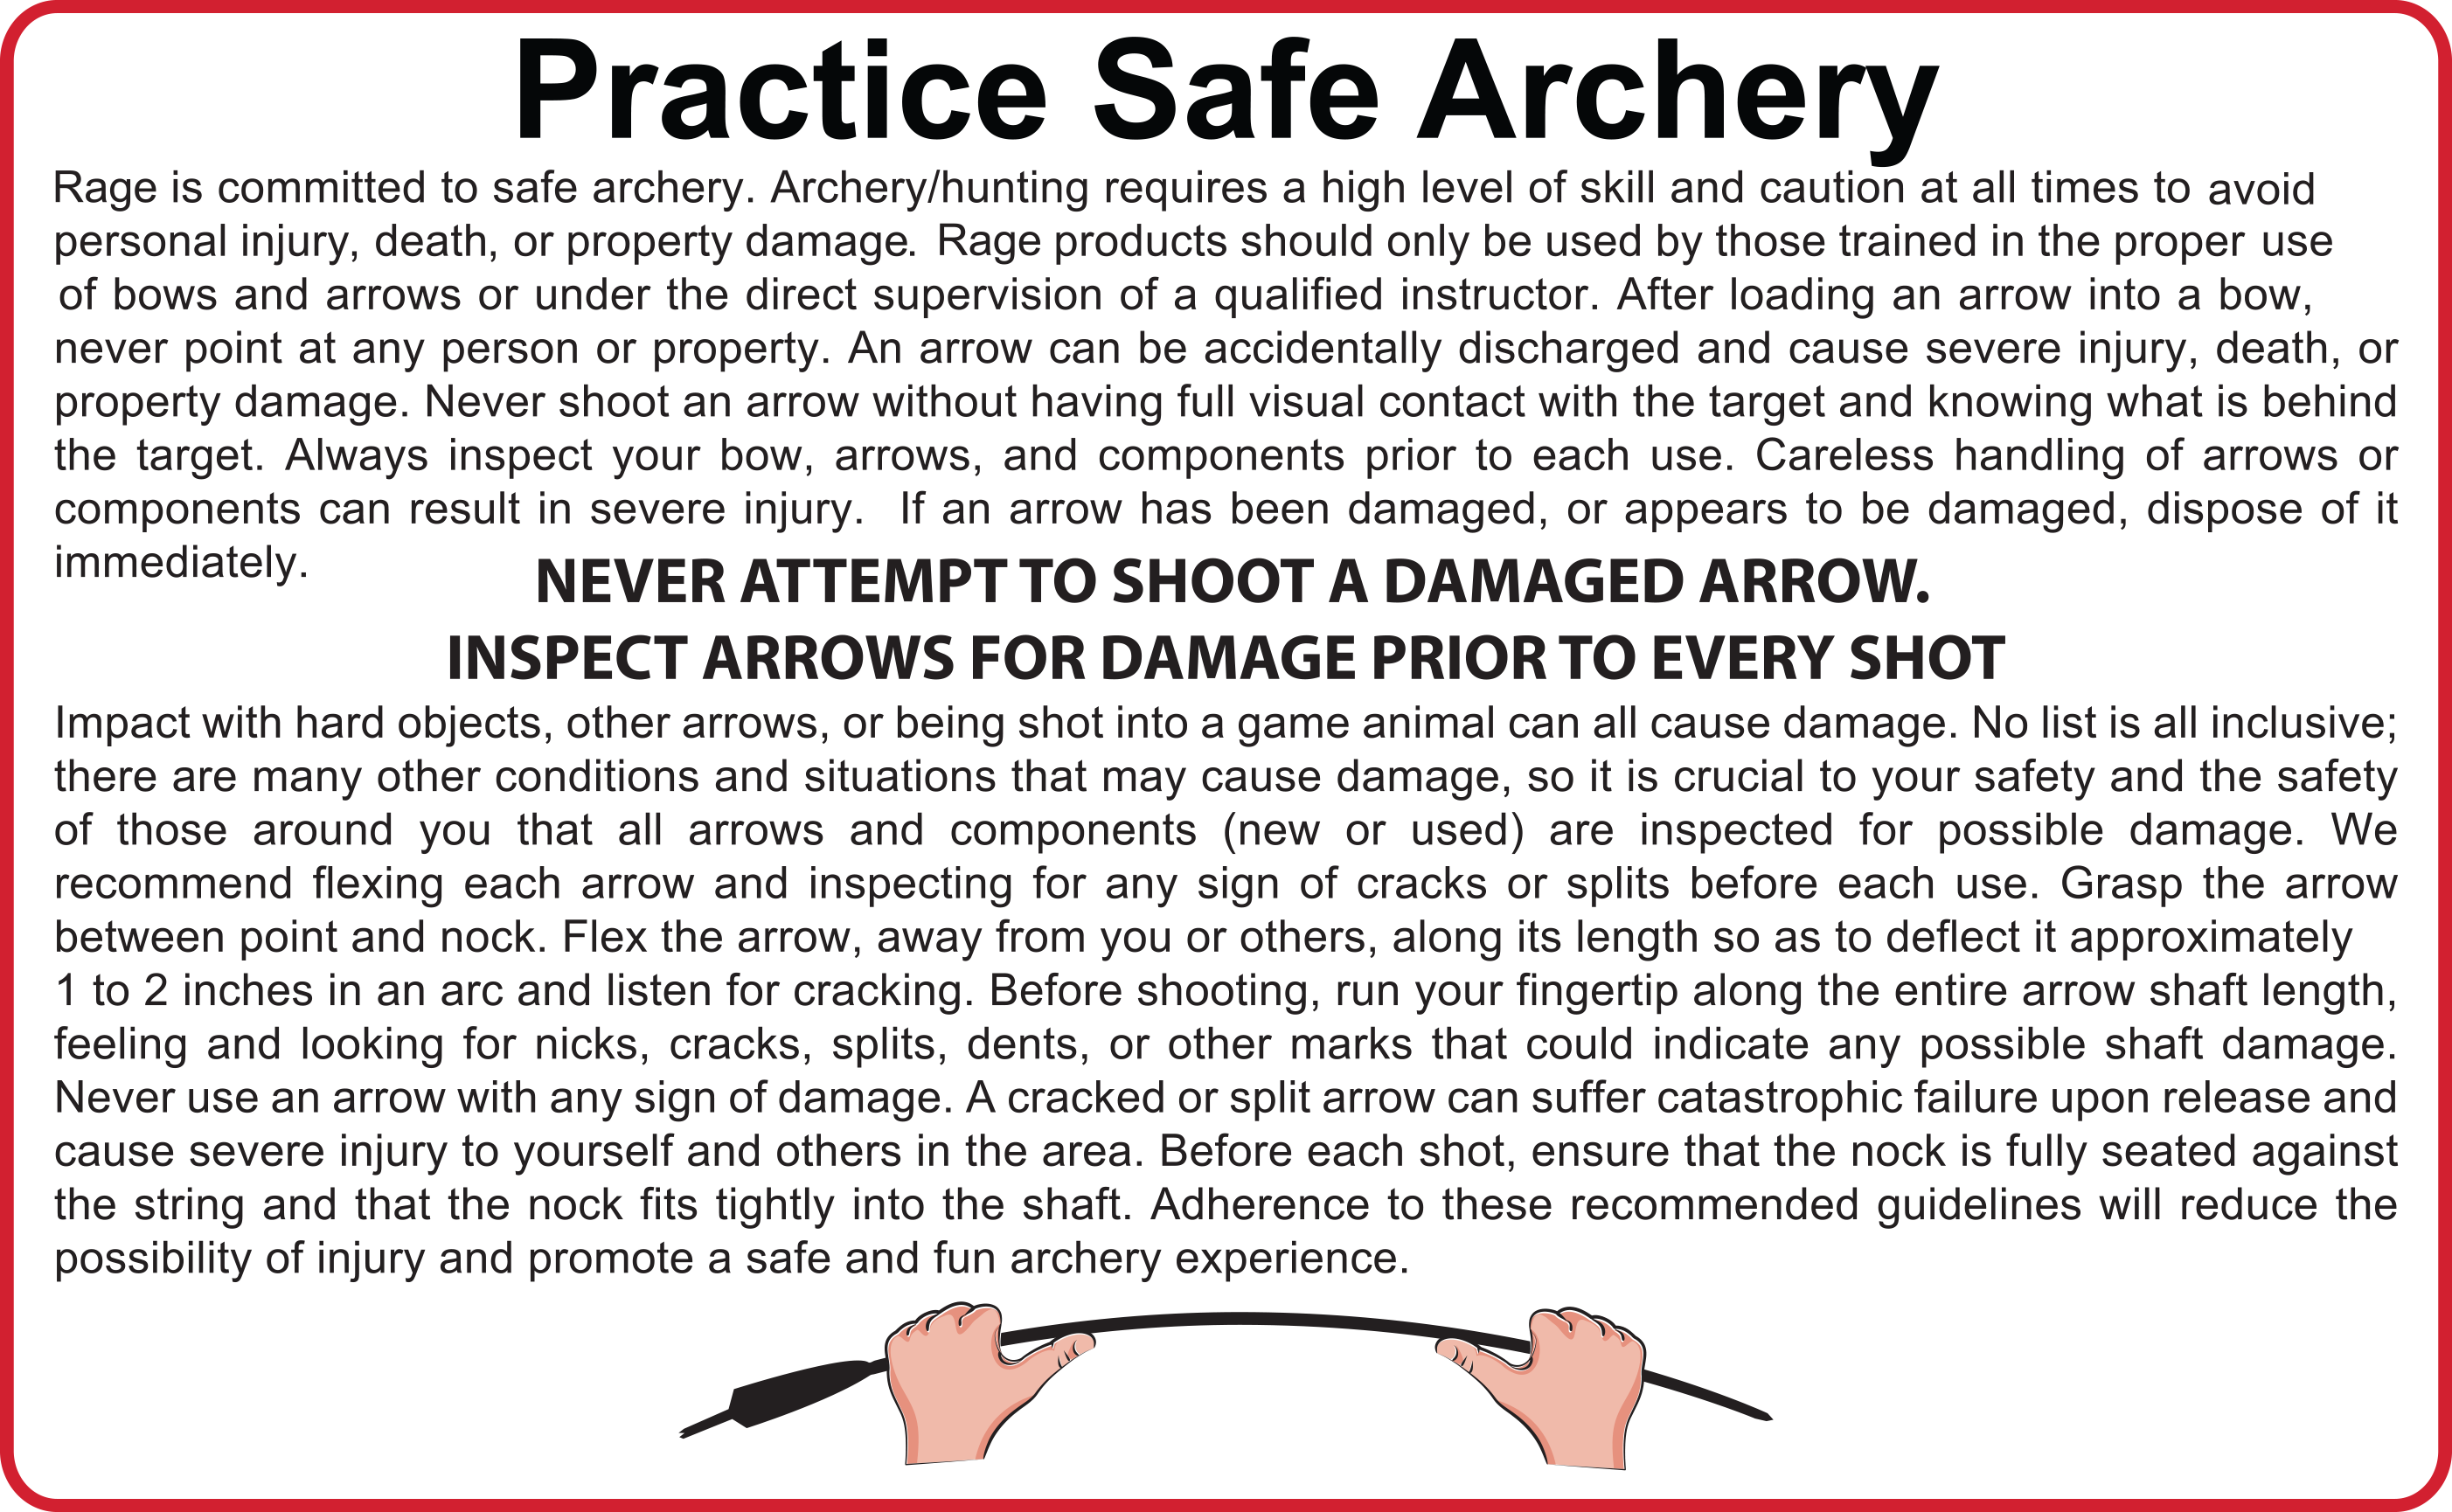 practice-safe-archery-label-rage.png